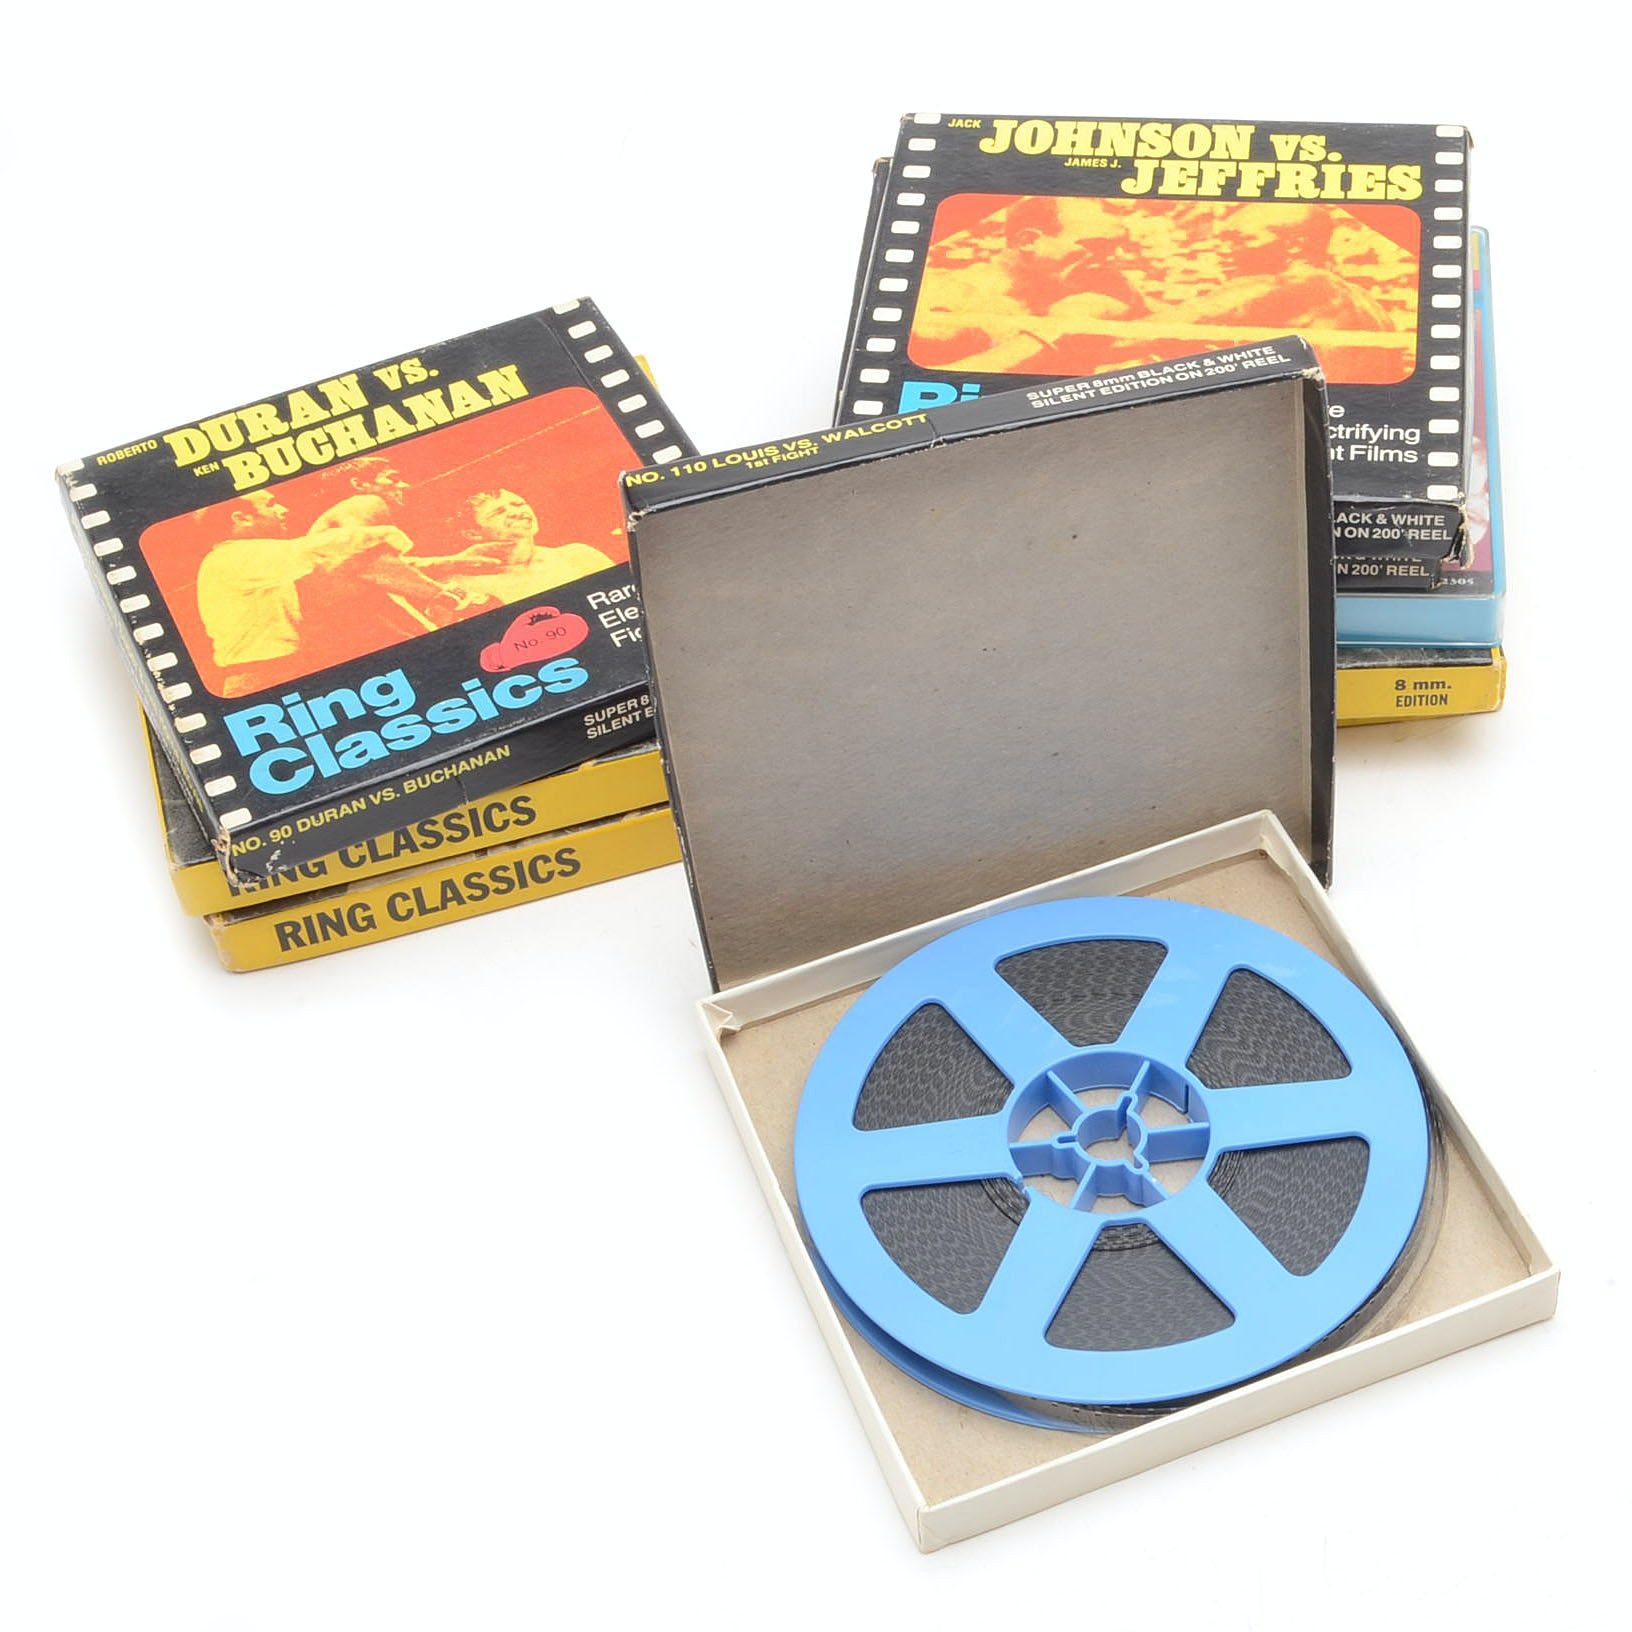 Nine 8mm Boxing Films  Includes Ali and Marciano